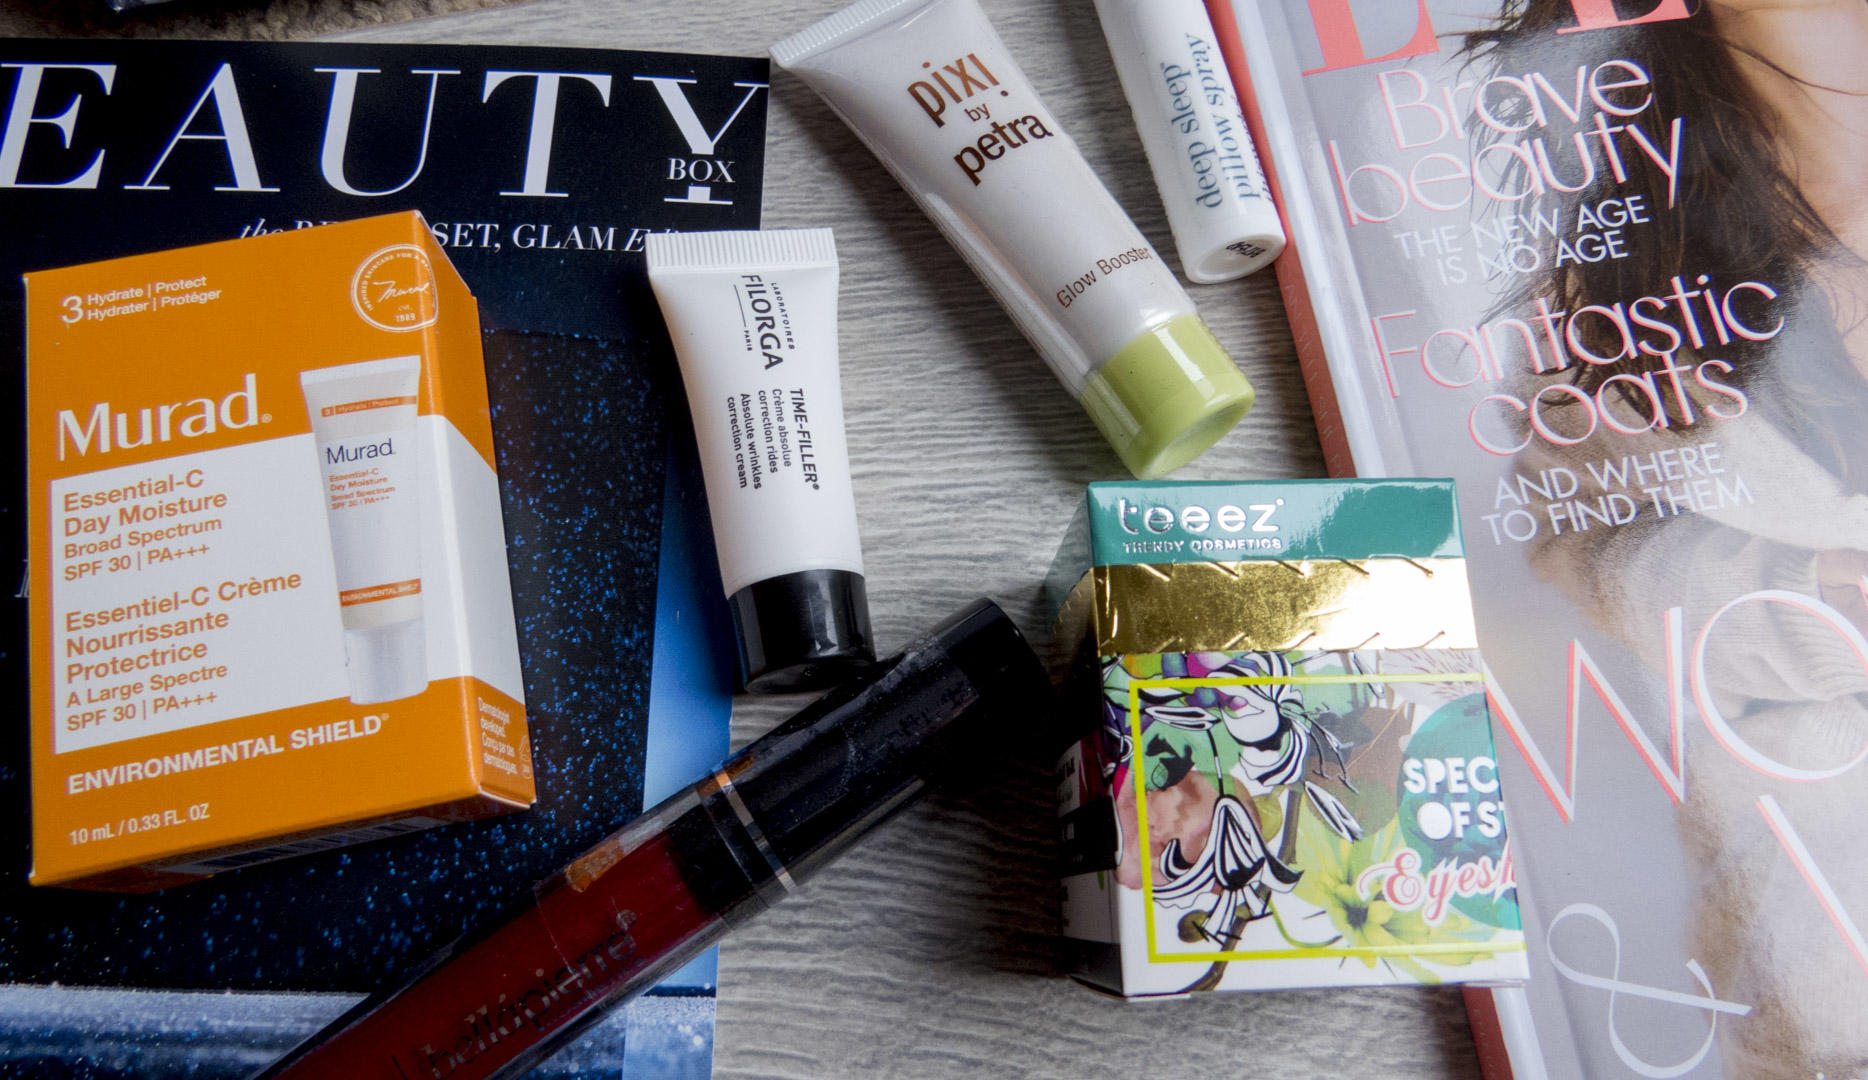 A flatlay with various products and magazines from the November Lookfantastic beauty box.